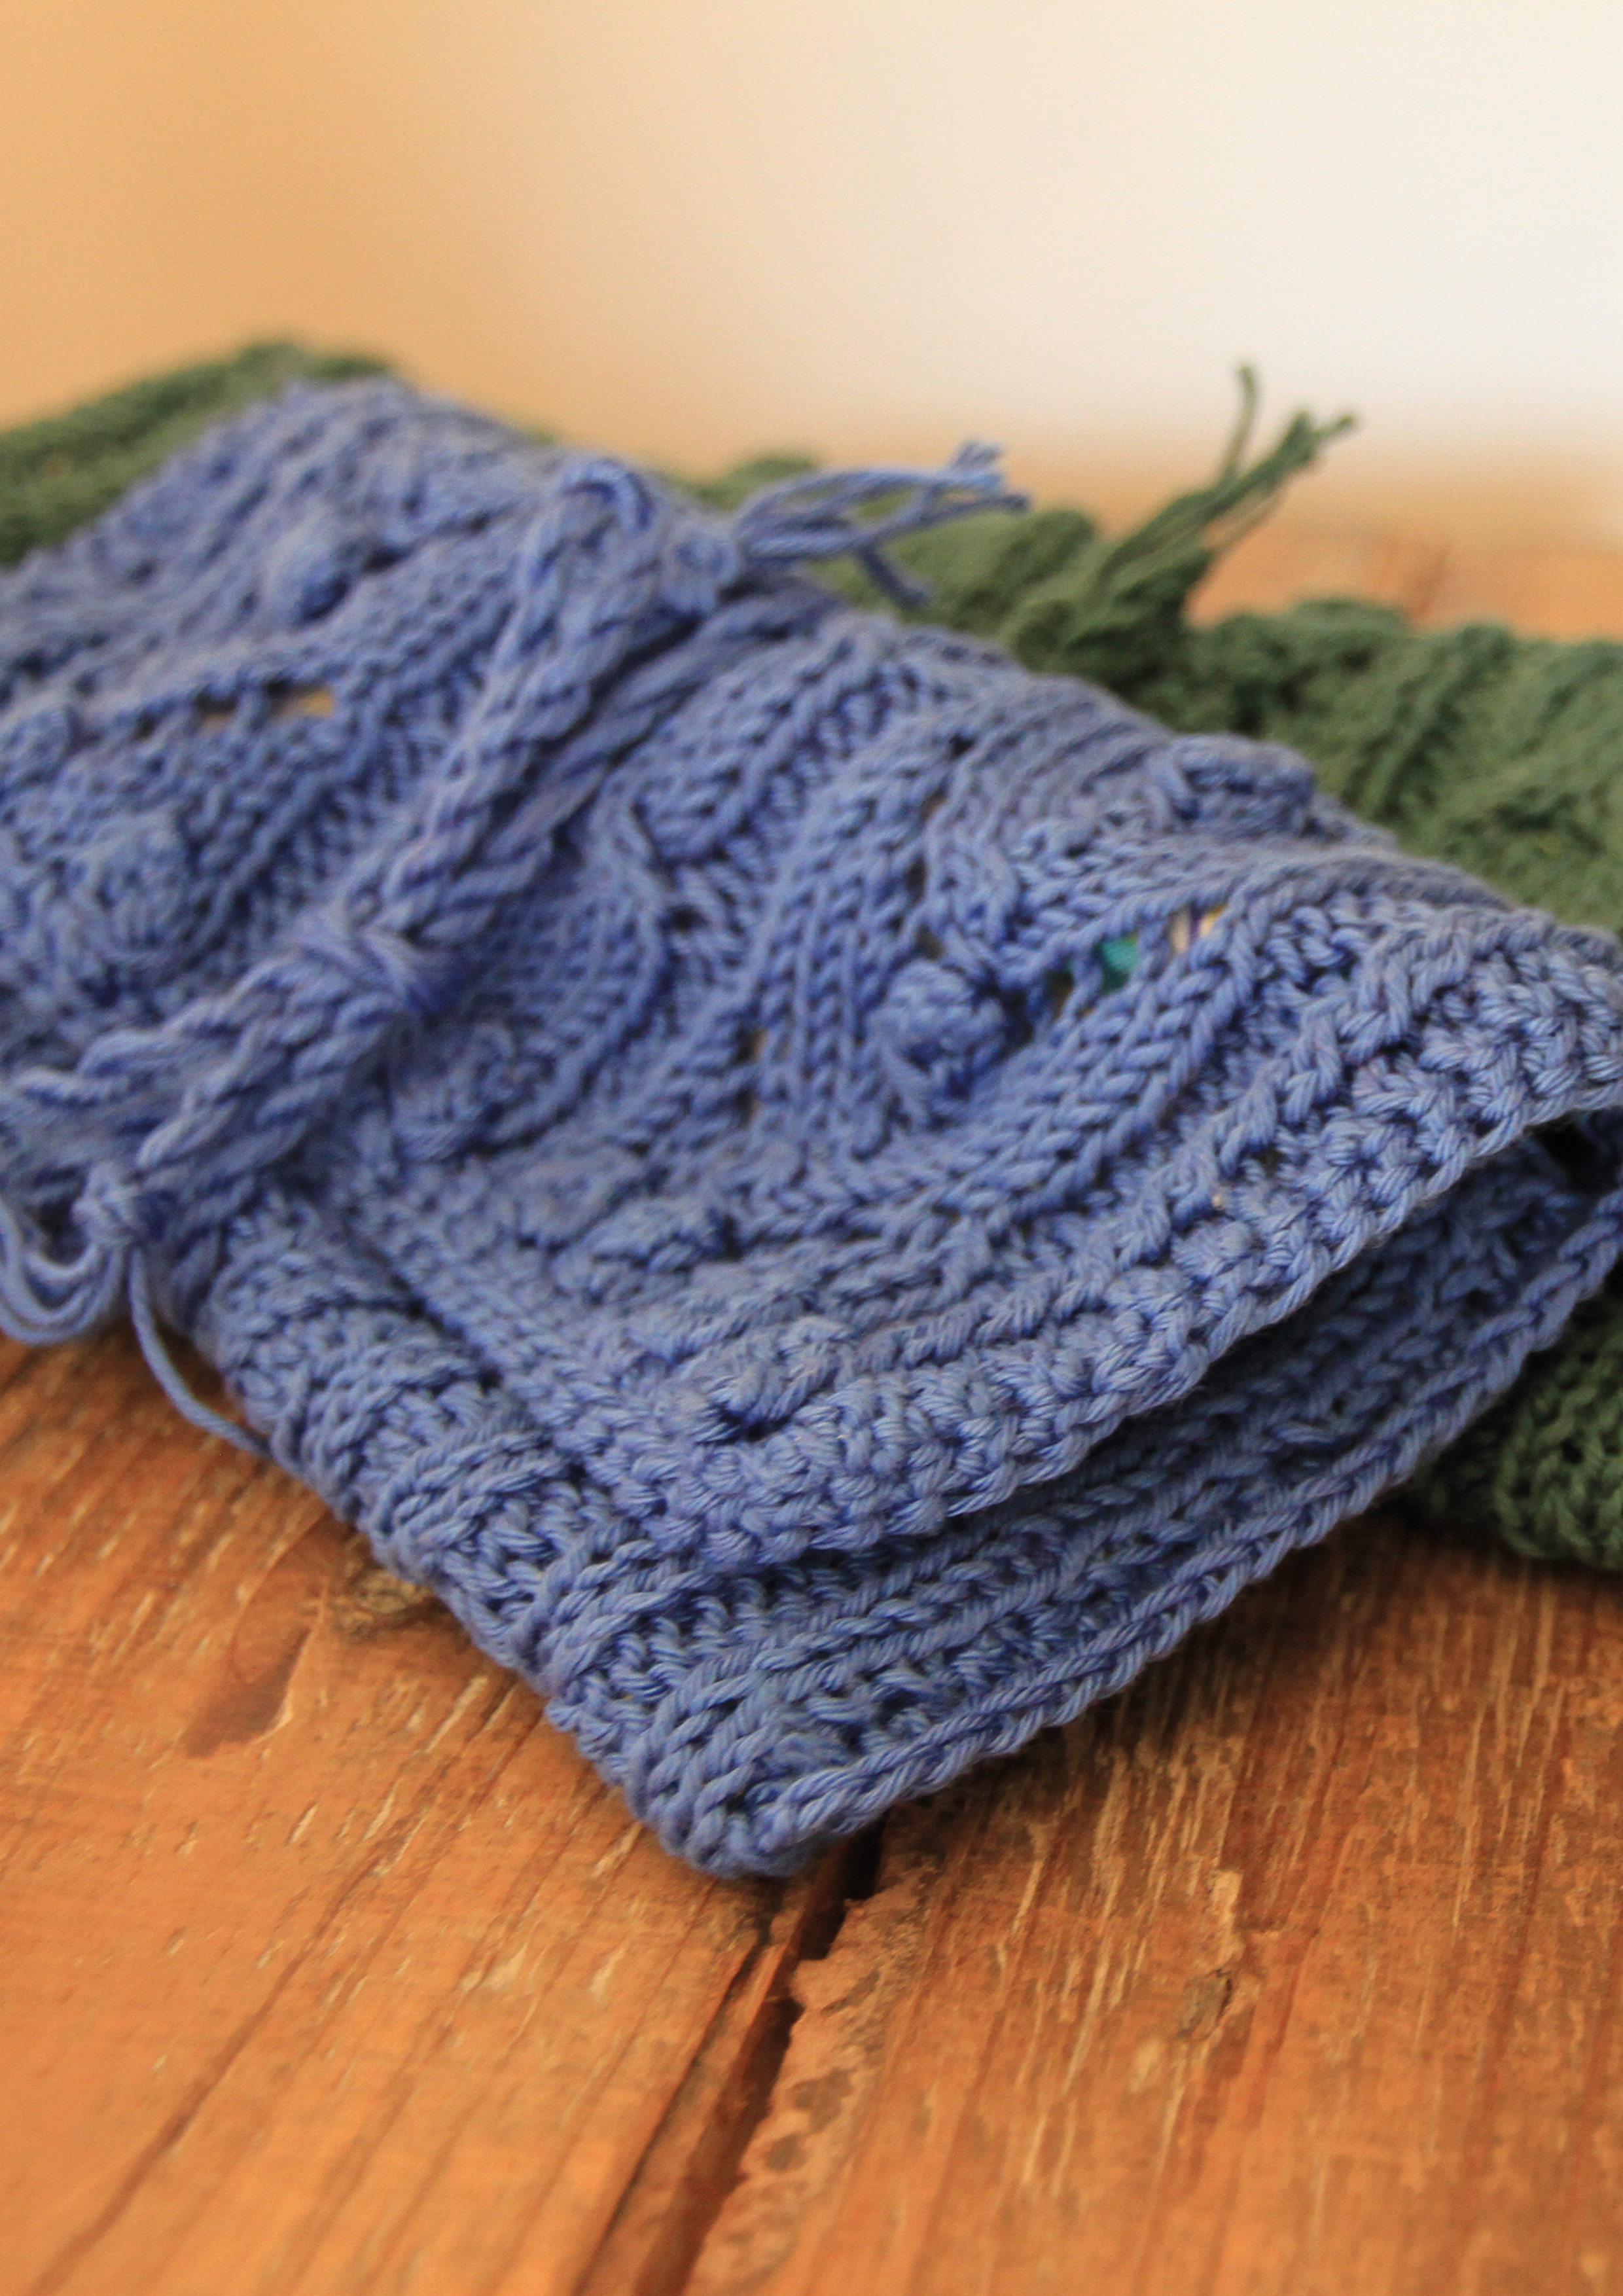 Inspirational Knitting Needle & Crochet Hook Rolls Knit with Crochet Hook Of Adorable 45 Images Knit with Crochet Hook